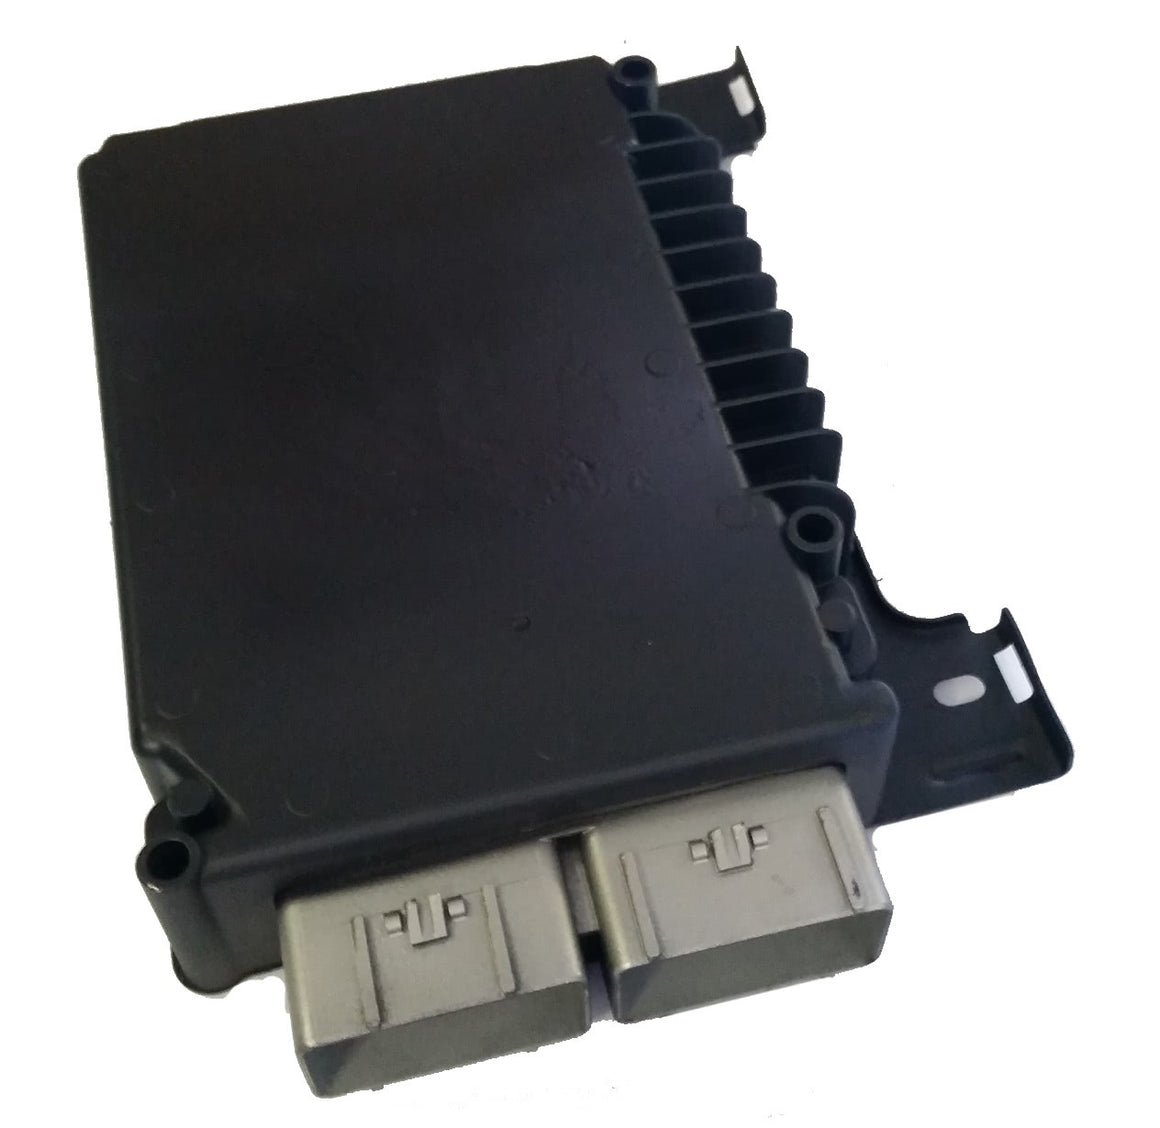 Dodge Ram Van Power-train Control Module (PCM / ECM / ECU)